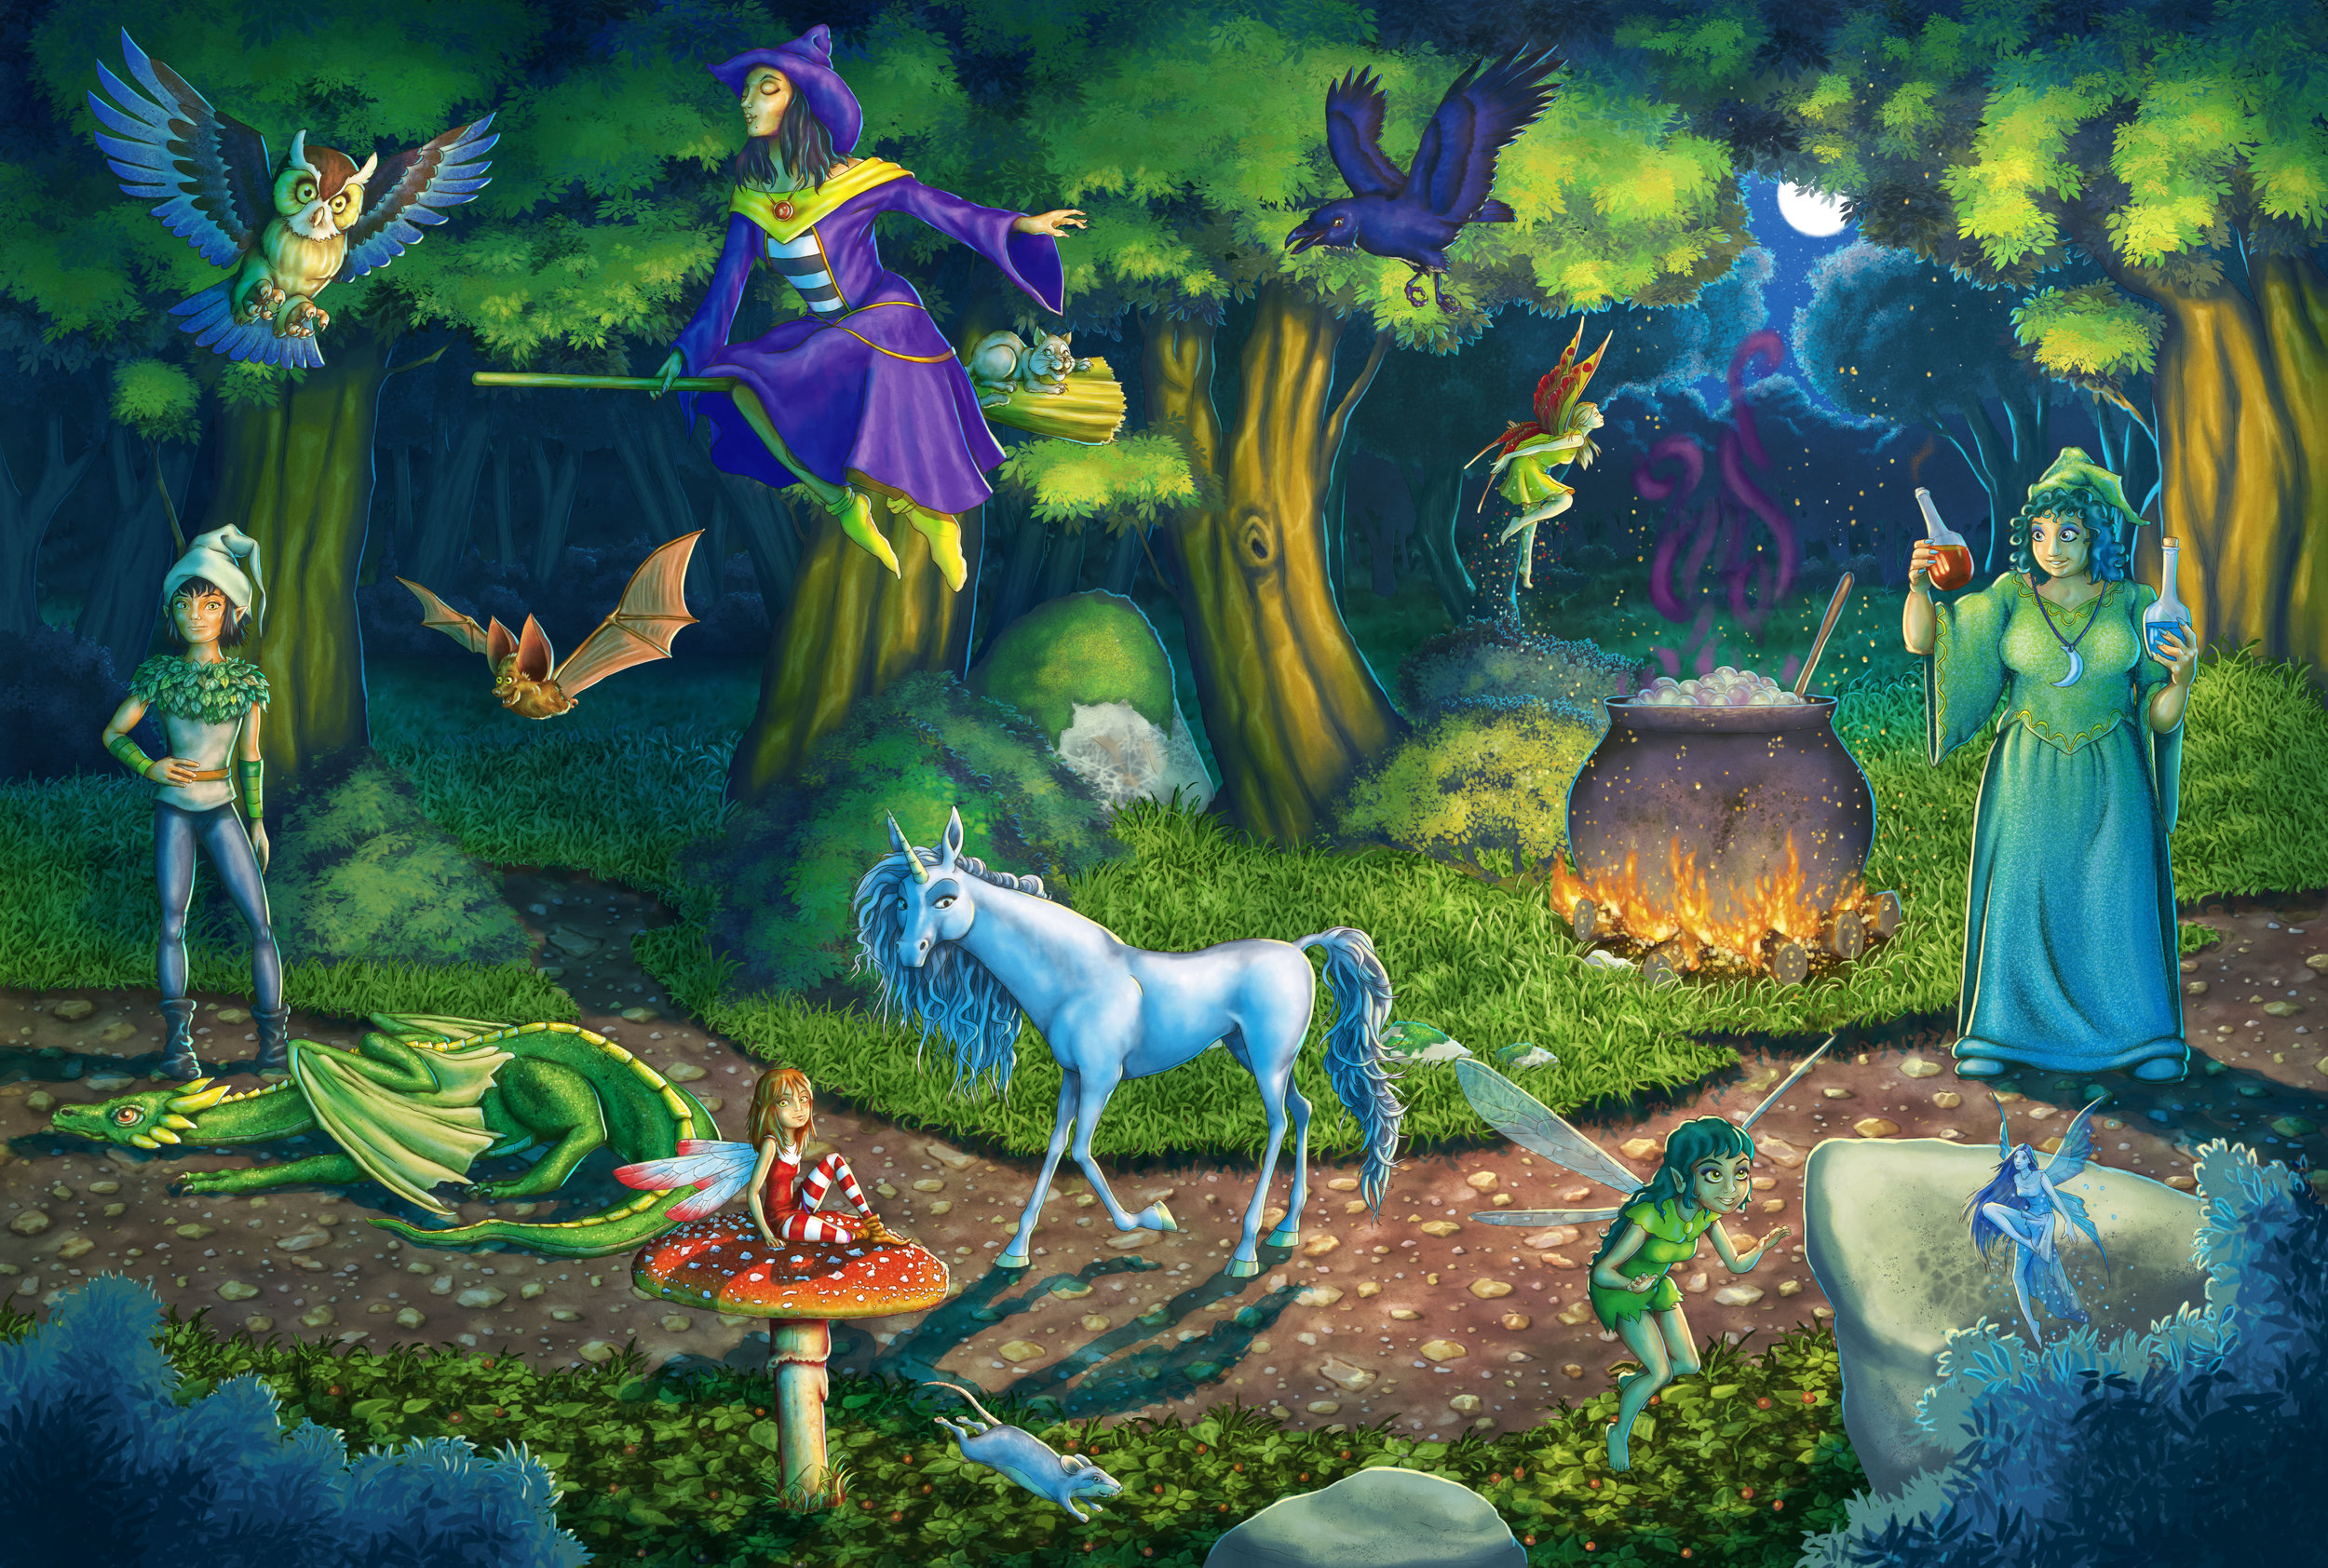 Magic-characters-in-the-Woods-Personaggi-magici-nel-Bosco.jpg